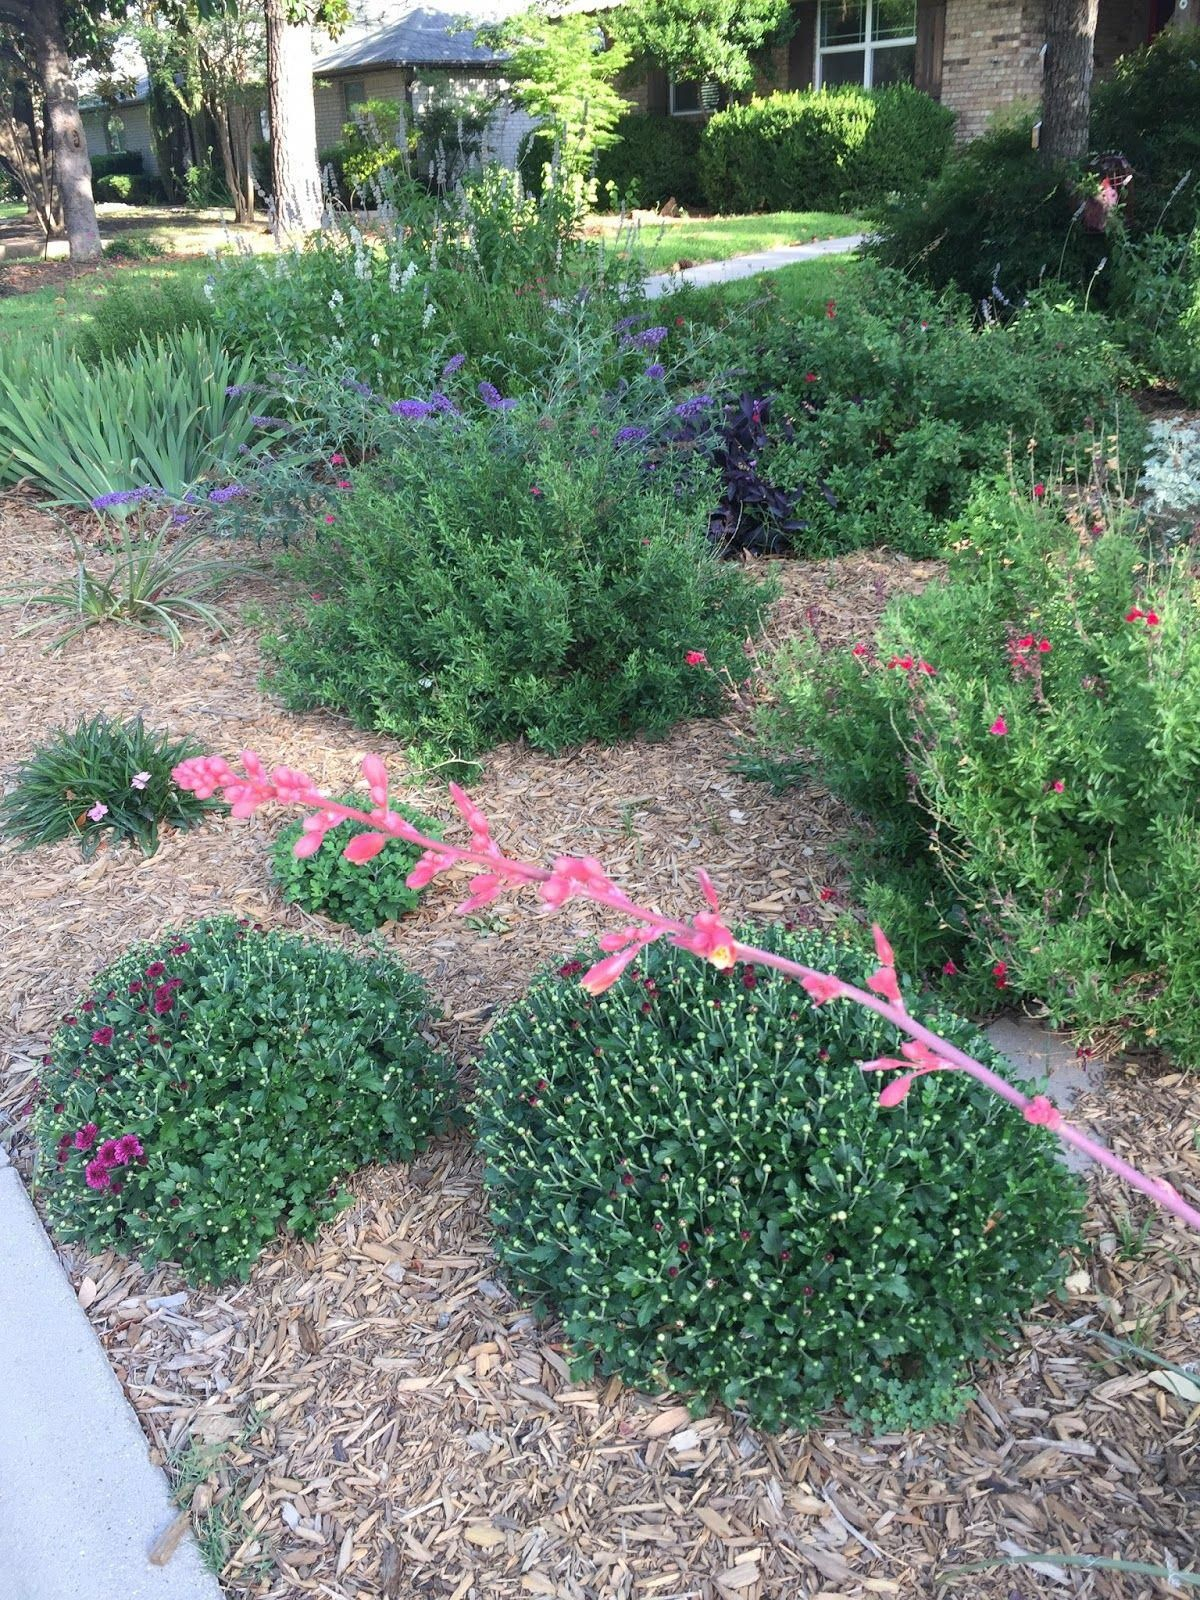 Bgardening Landscape Design Landscape Gardening How Much Does It within 13 Clever Ideas How to Build How Much Does Backyard Landscaping Cost